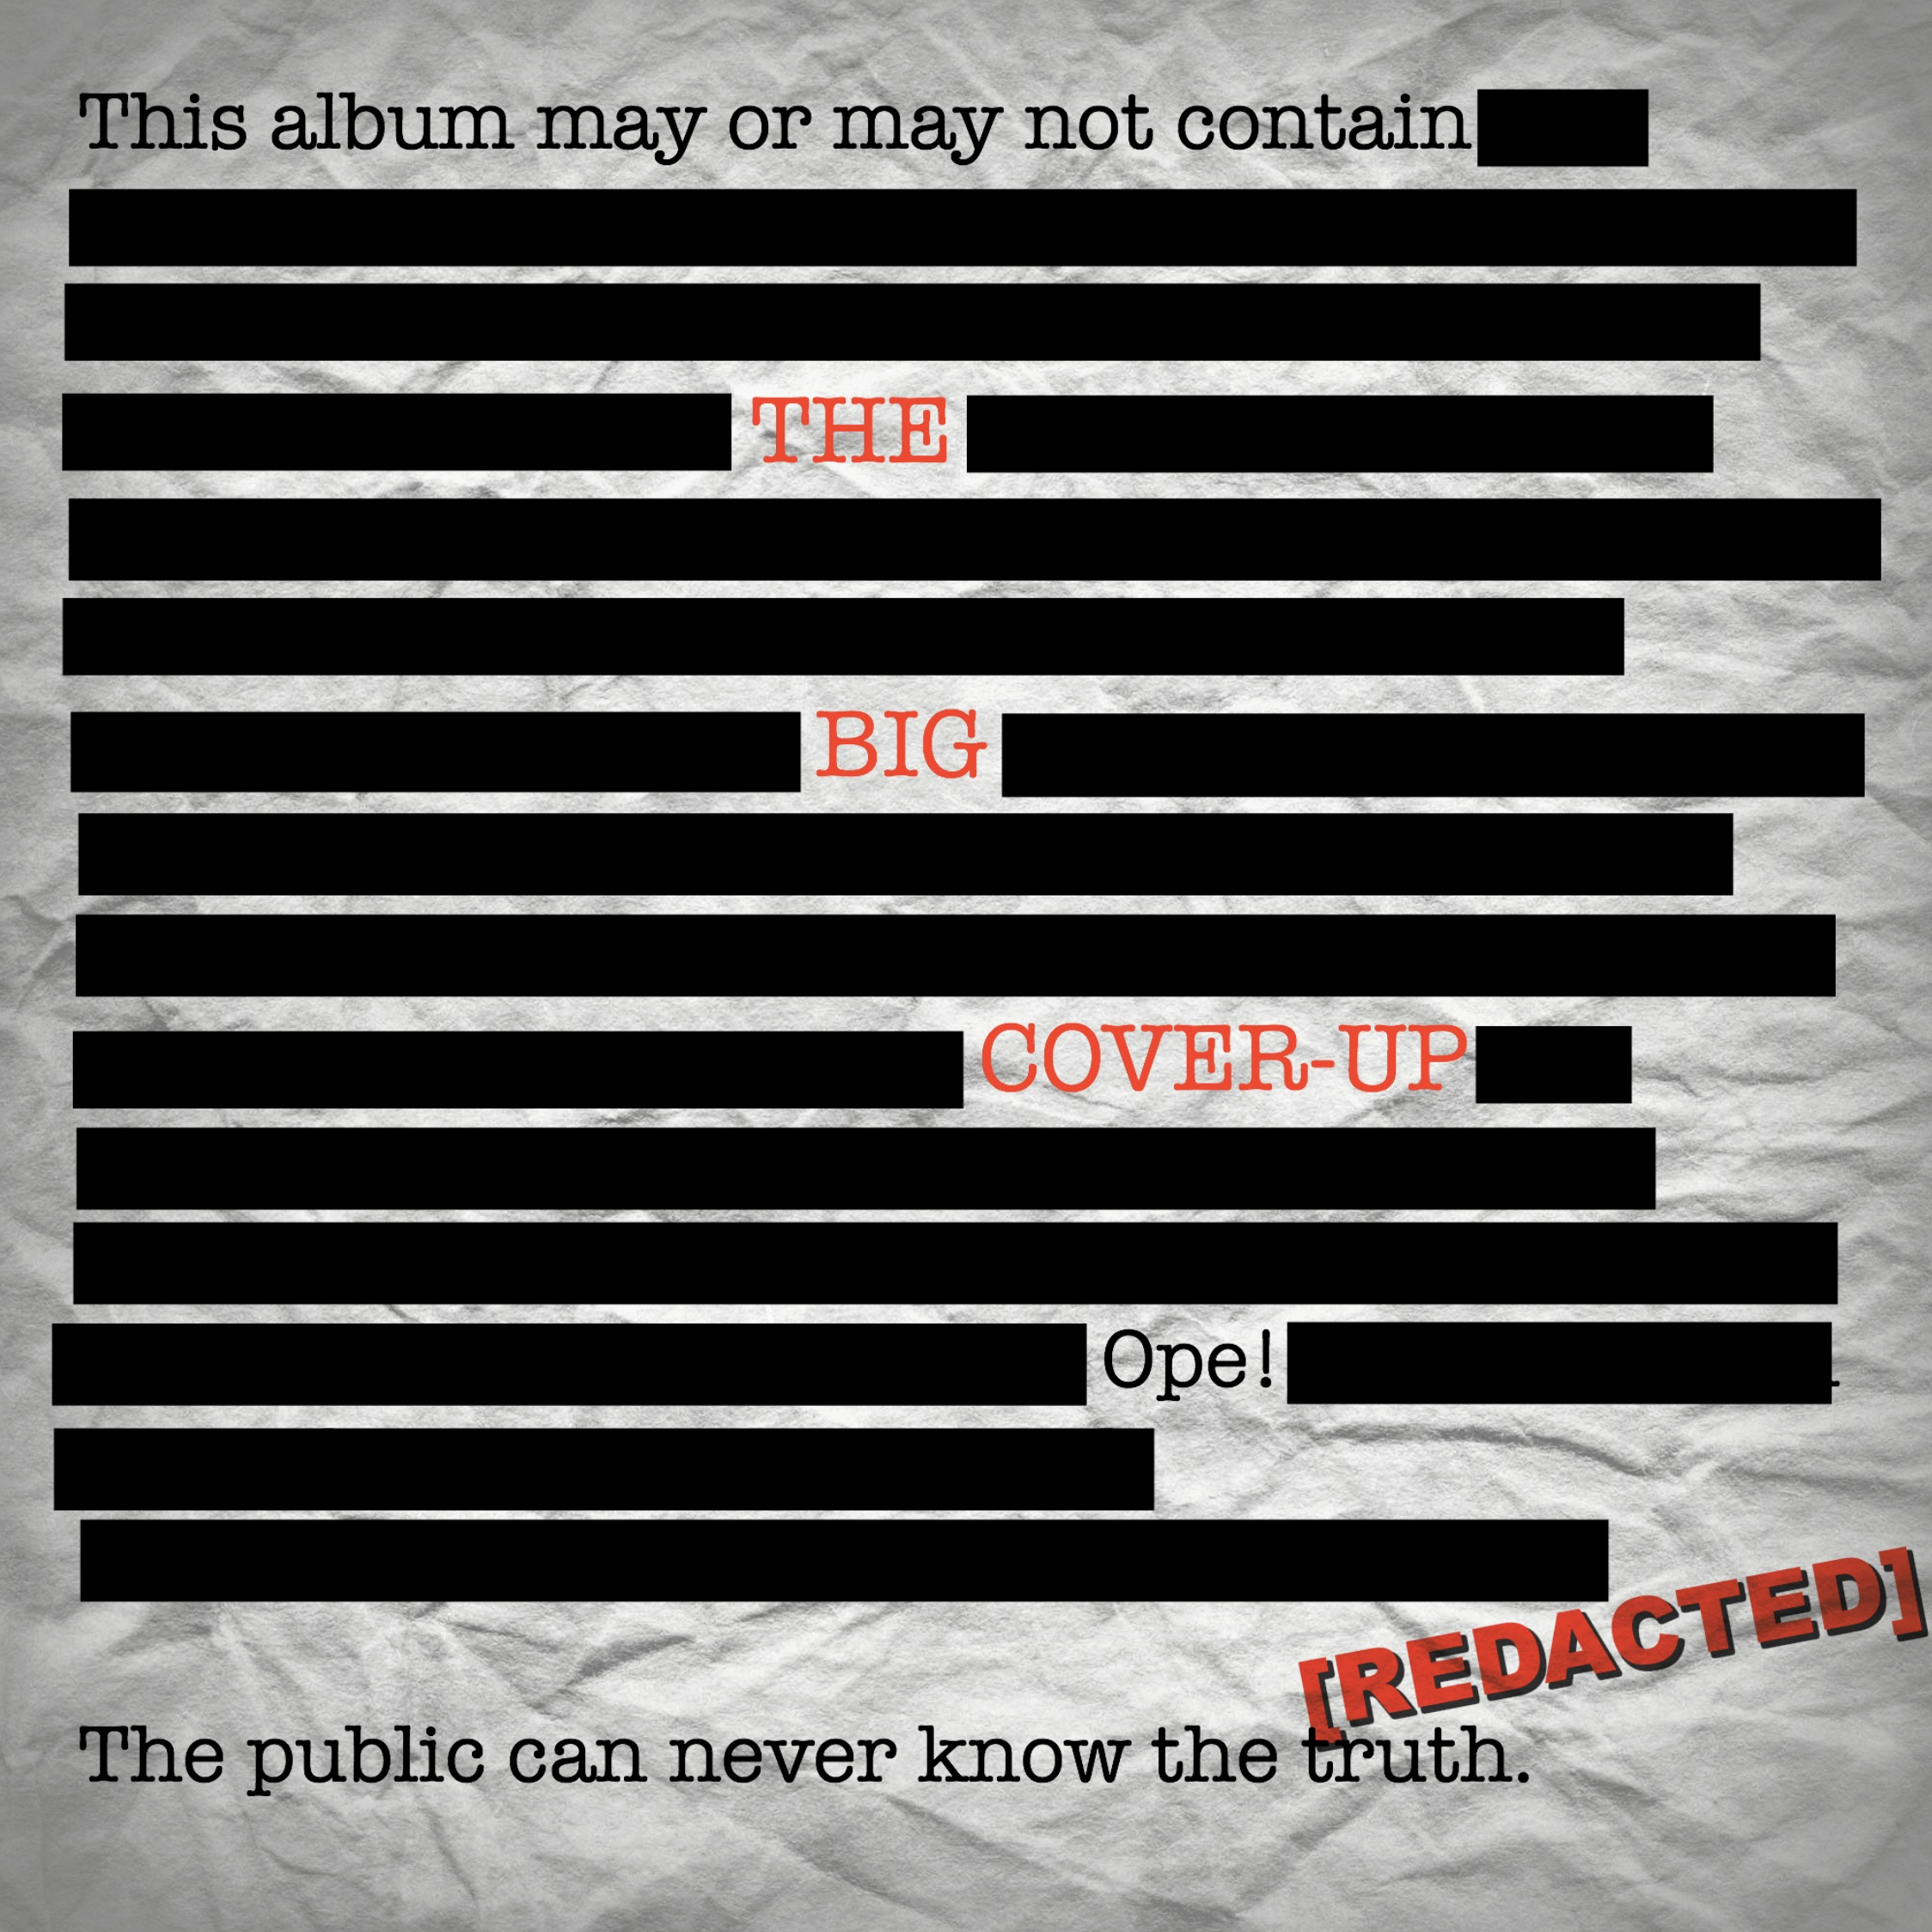 The Big Cover-Up.jpg